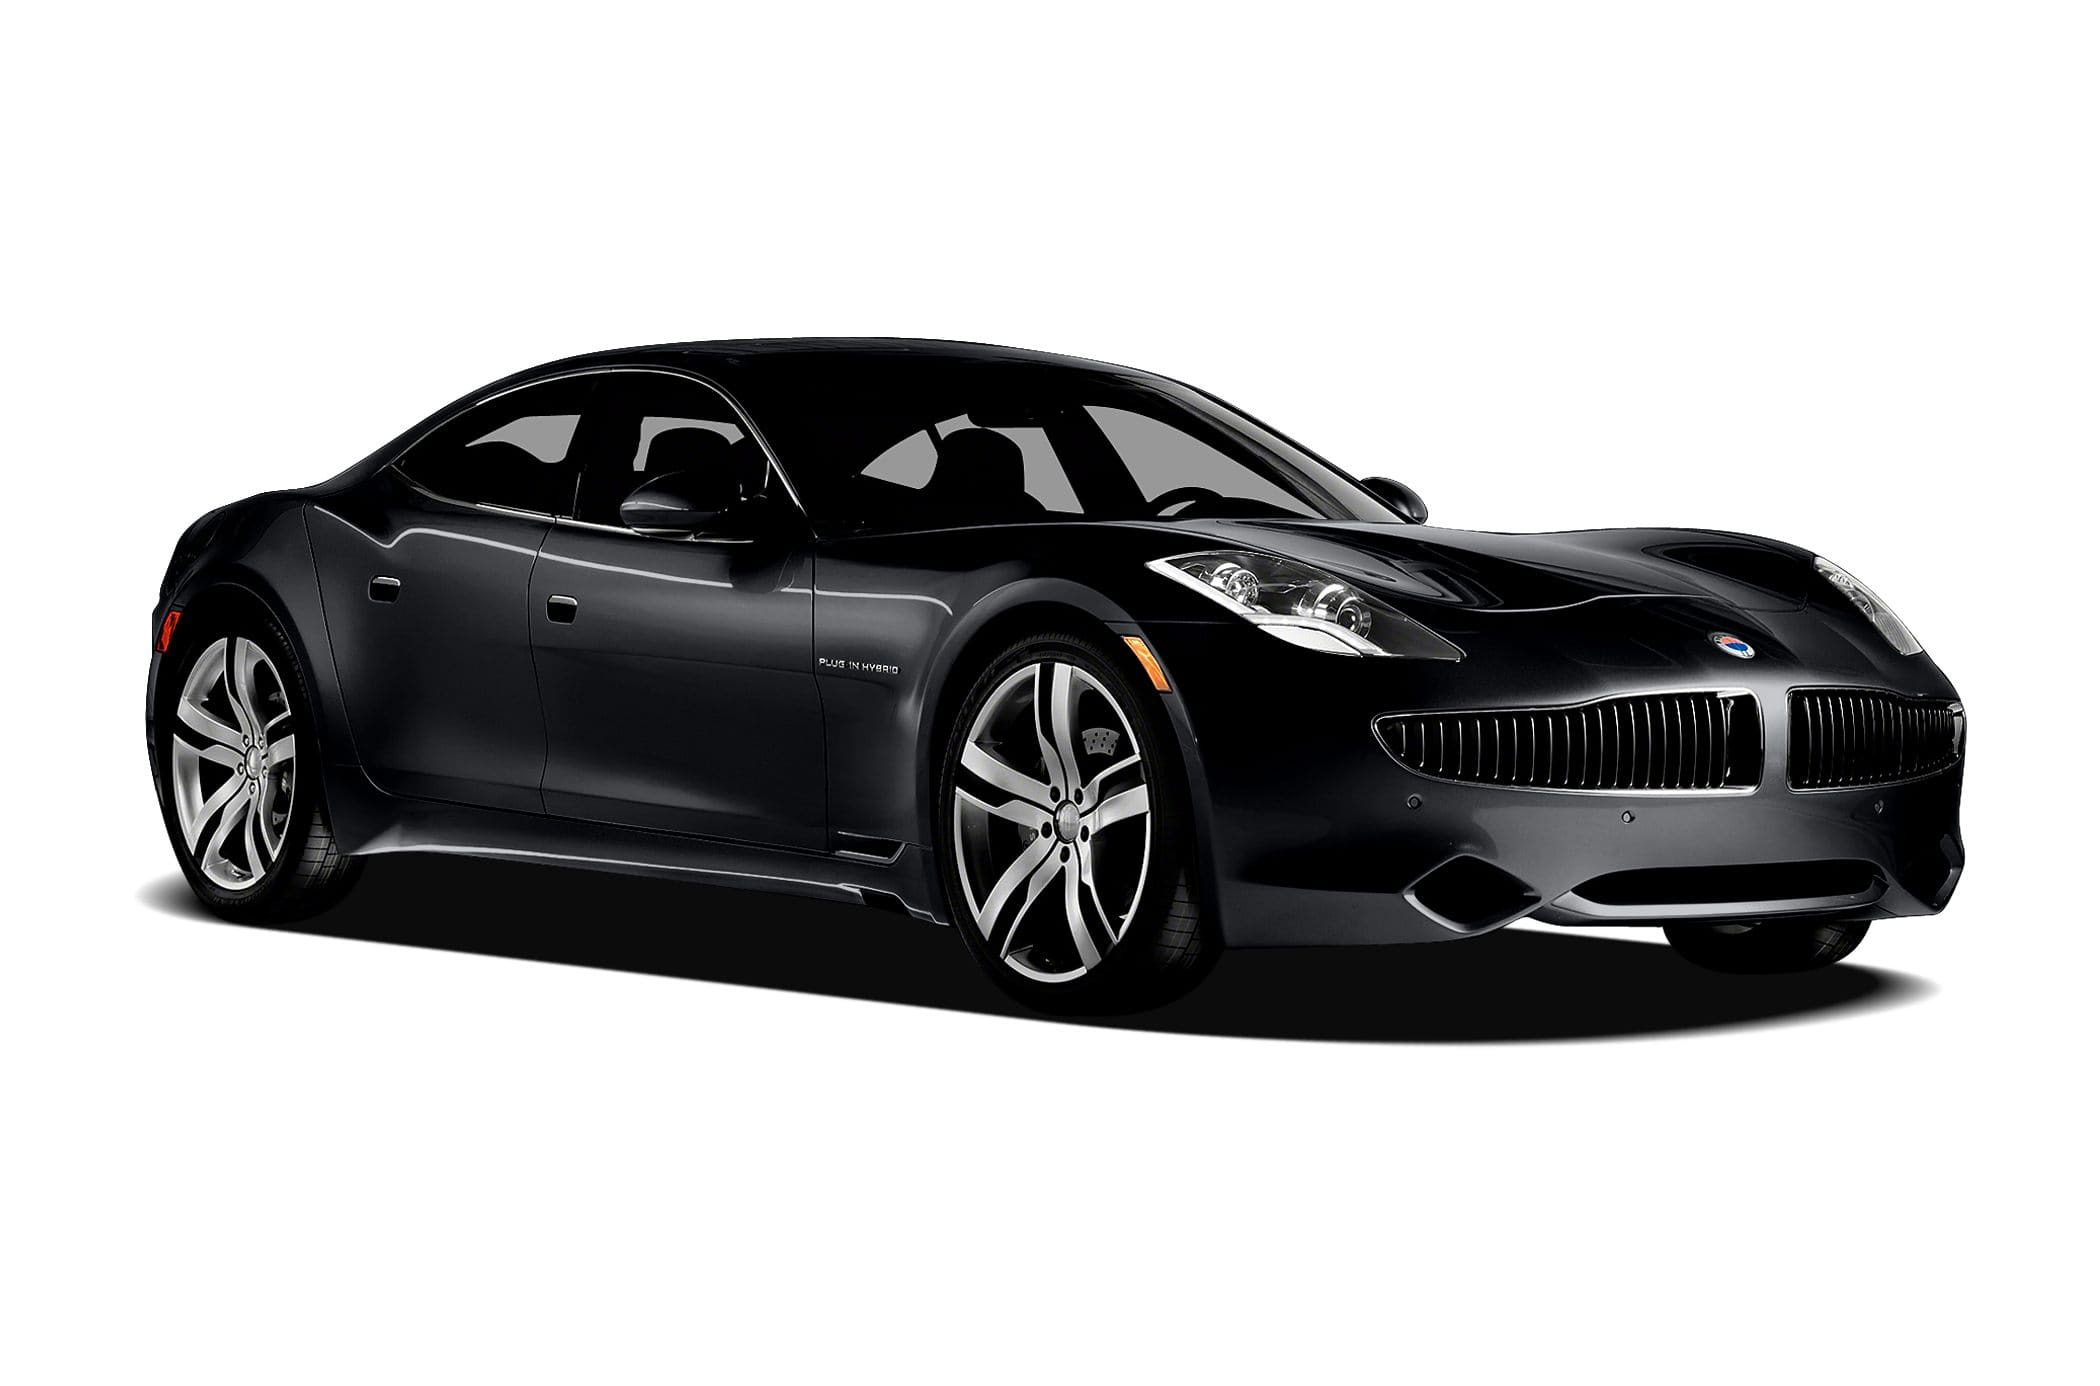 Fisker Karma Wallpapers HD